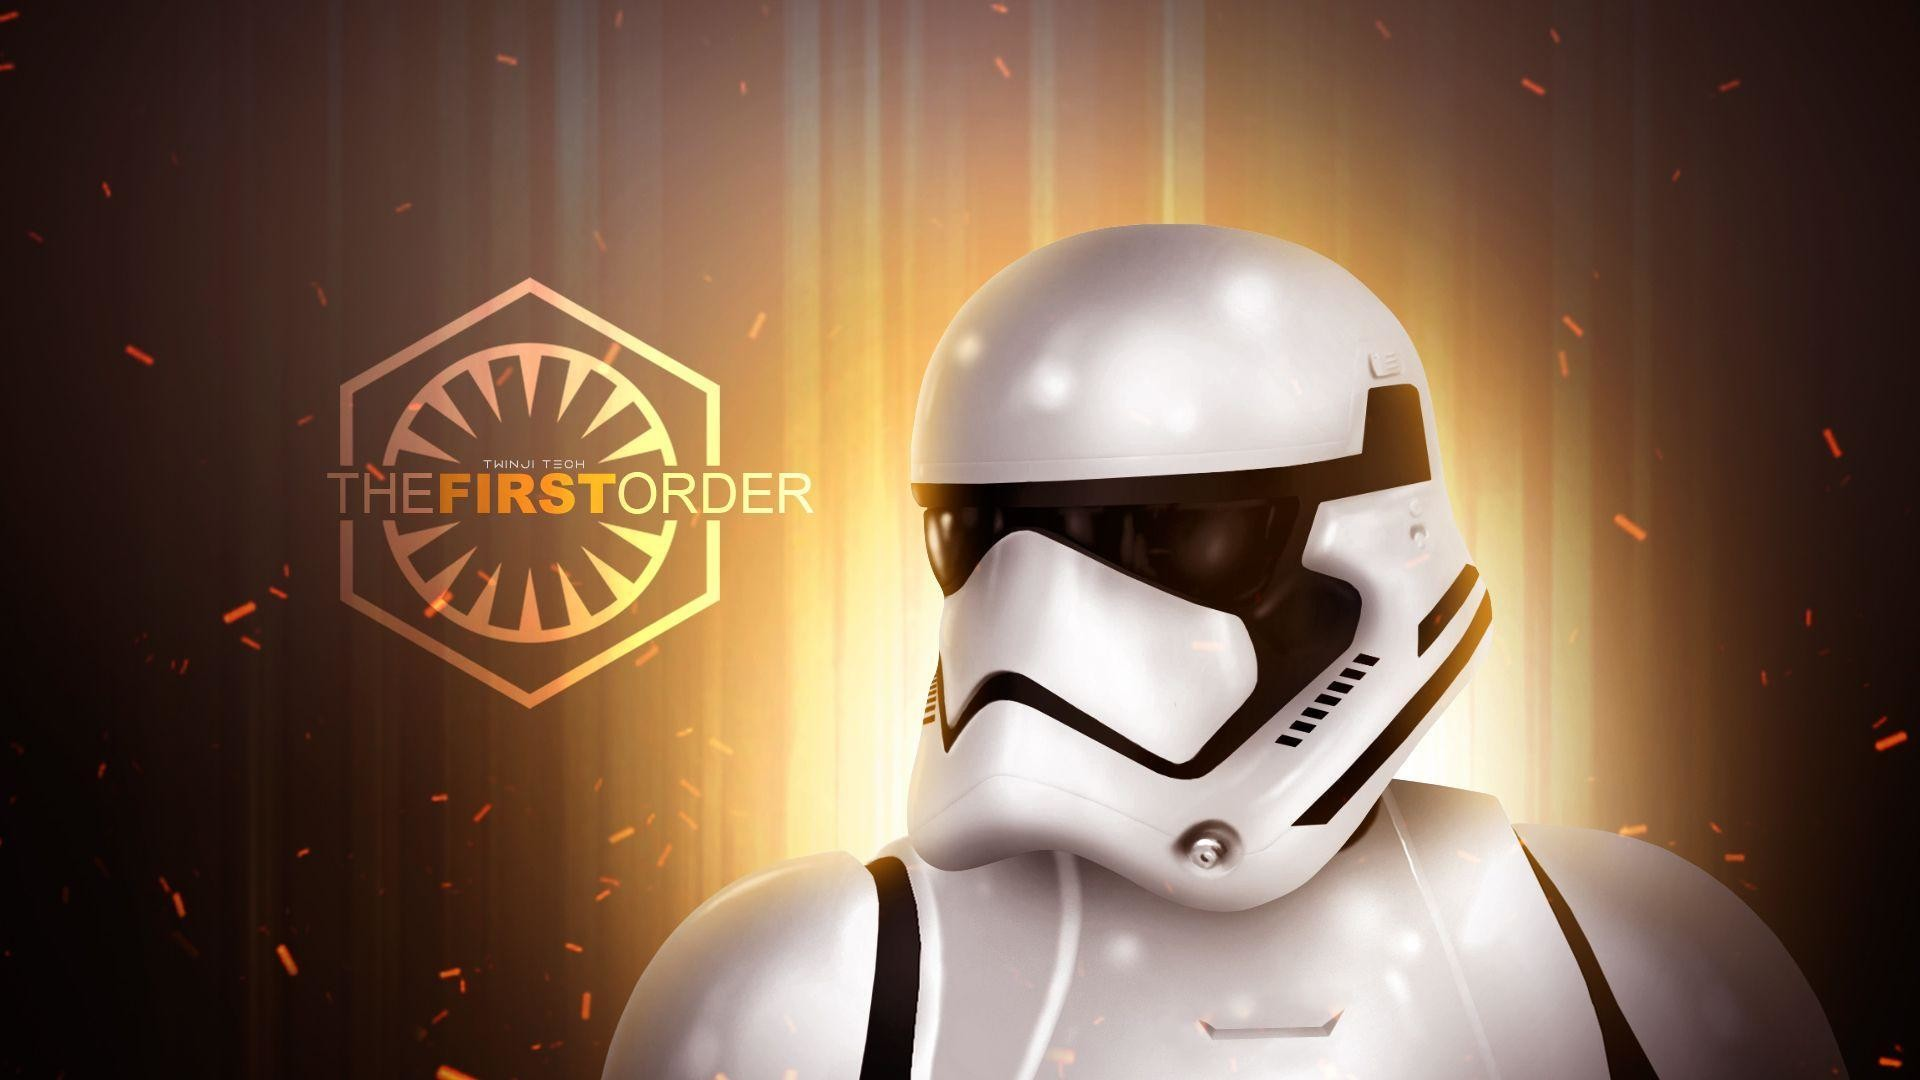 First Order Stormtrooper Wallpapers High Quality Perfect Wallpaper .